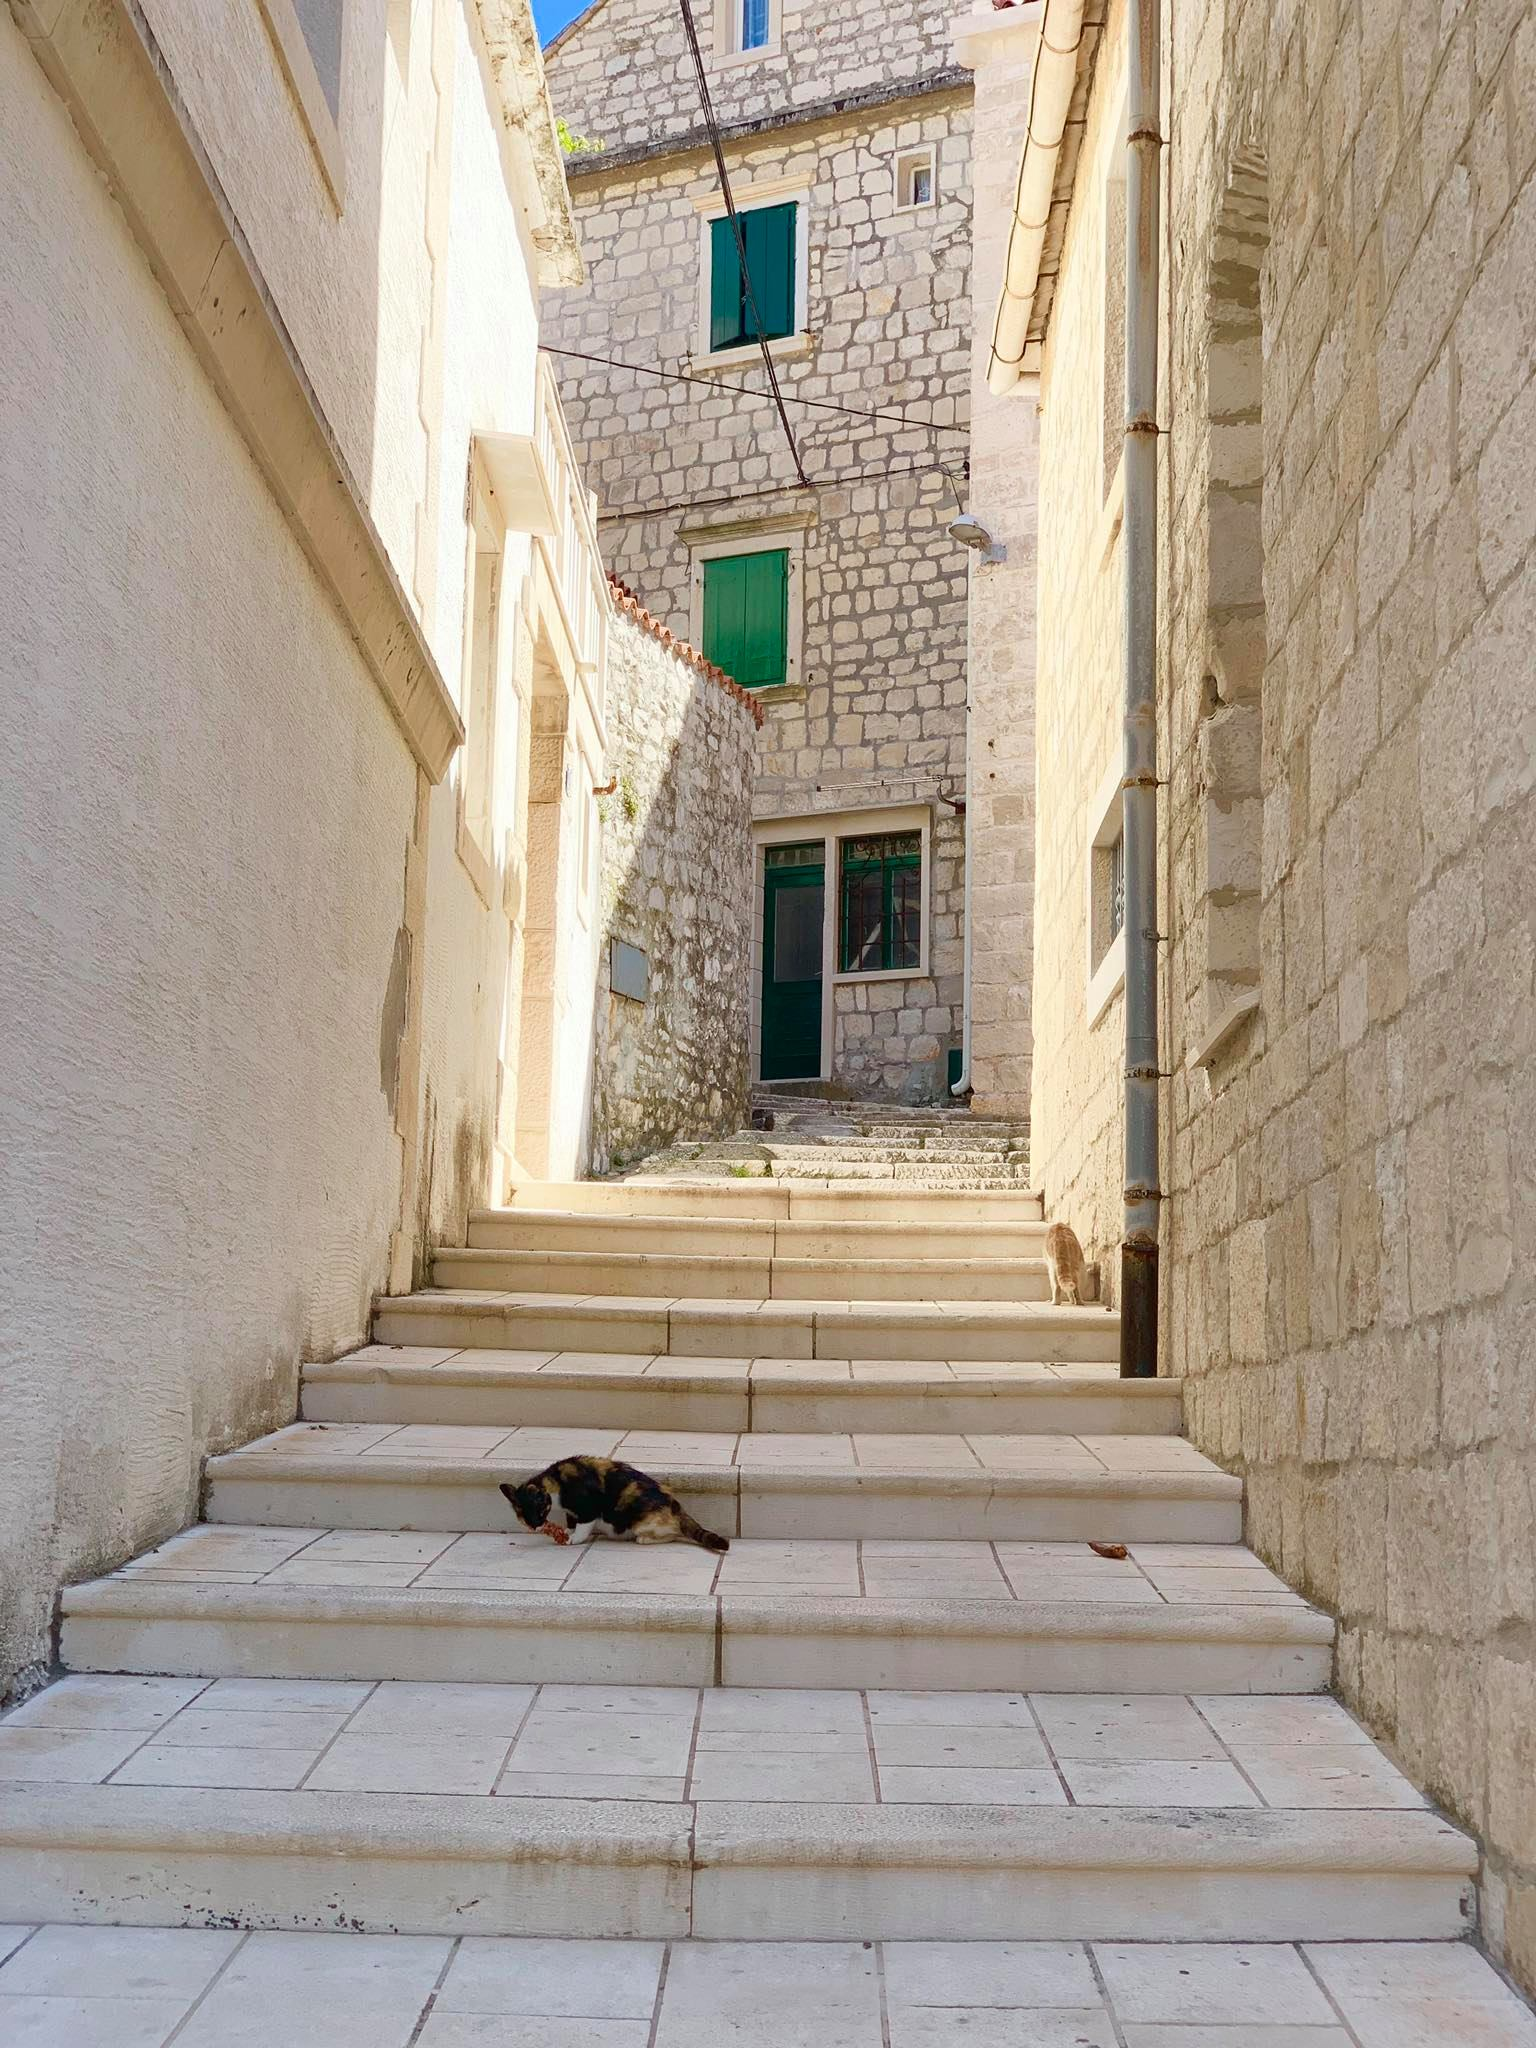 Life On The Road Day 28 Walking around the Small Coastal Town of Pucisca, Island Brac in Croatia9.jpg